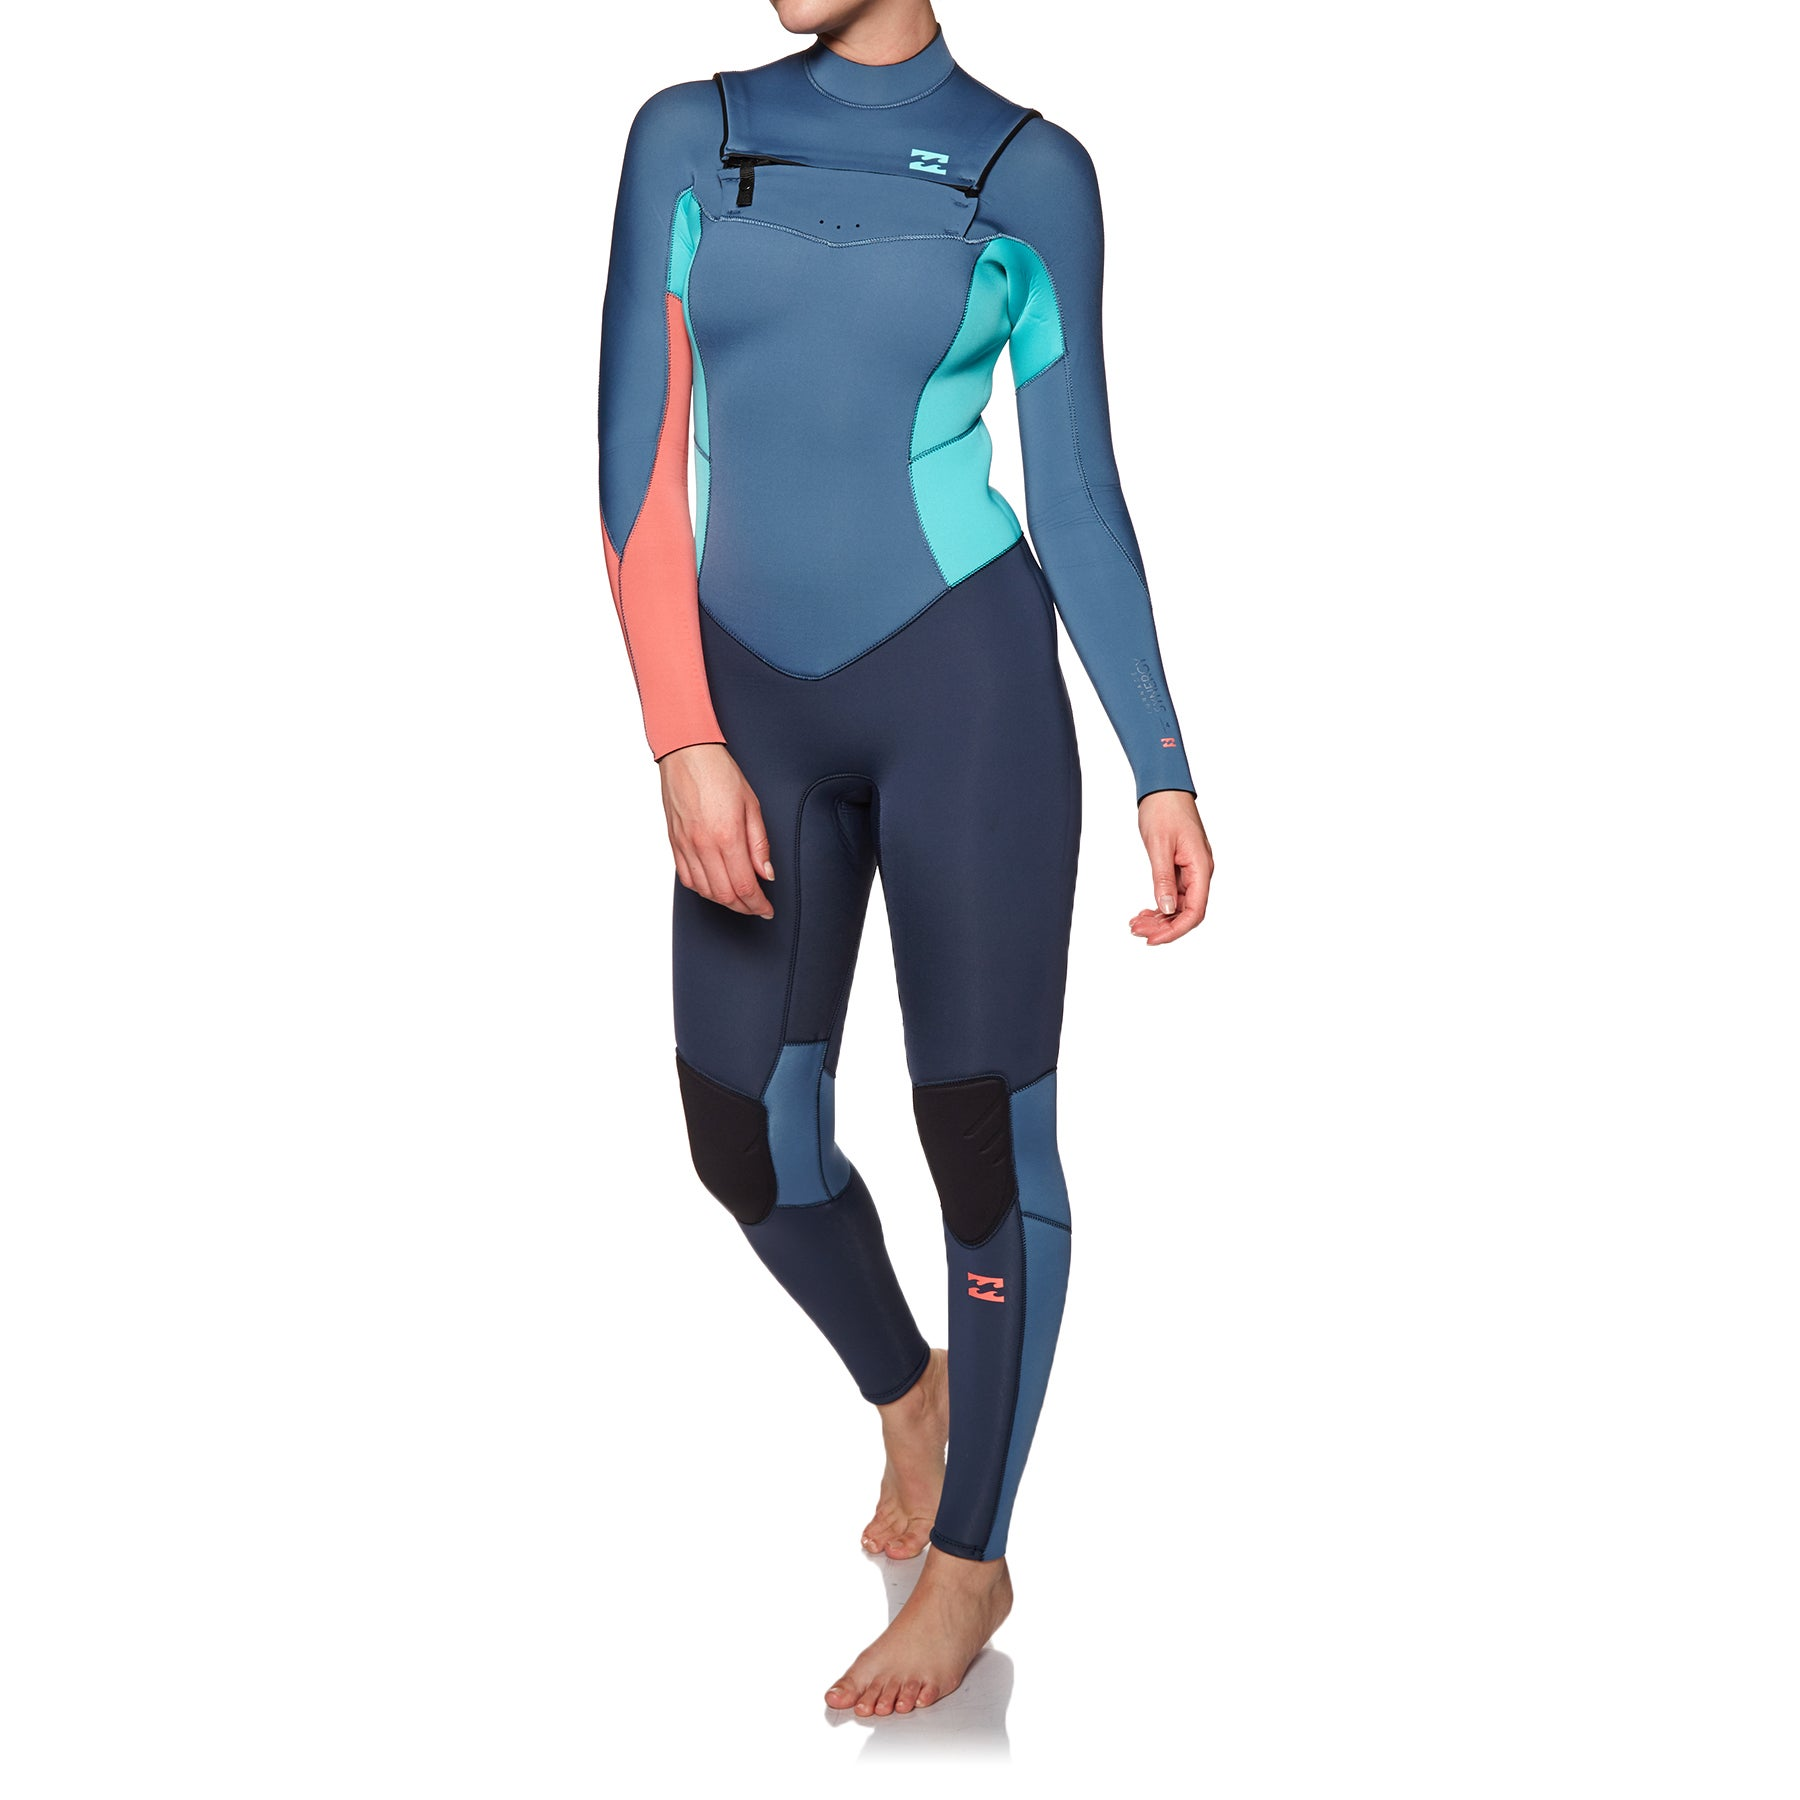 Billabong Furnace Synergy 4/3mm 2019 Chest Zip Wetsuit - Slate